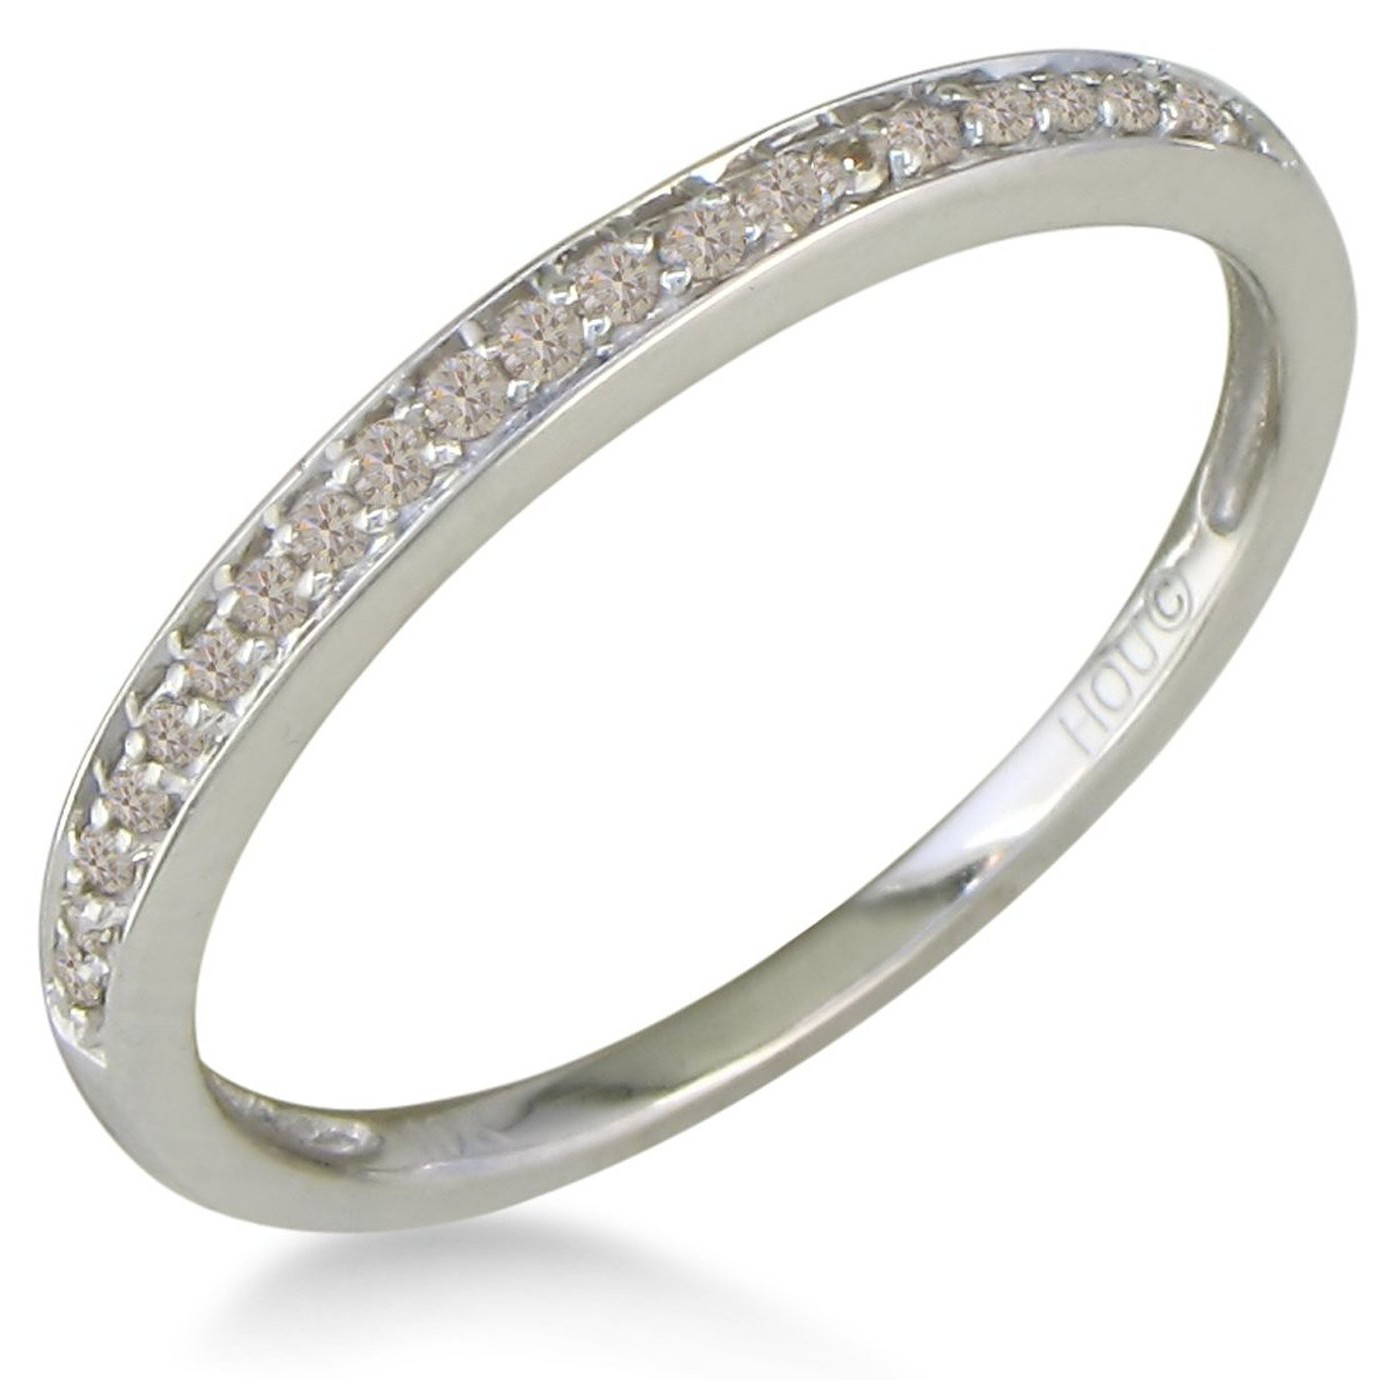 wedding bands for women white gold womens diamond wedding bands wedding bands for women white gold Wedding rings